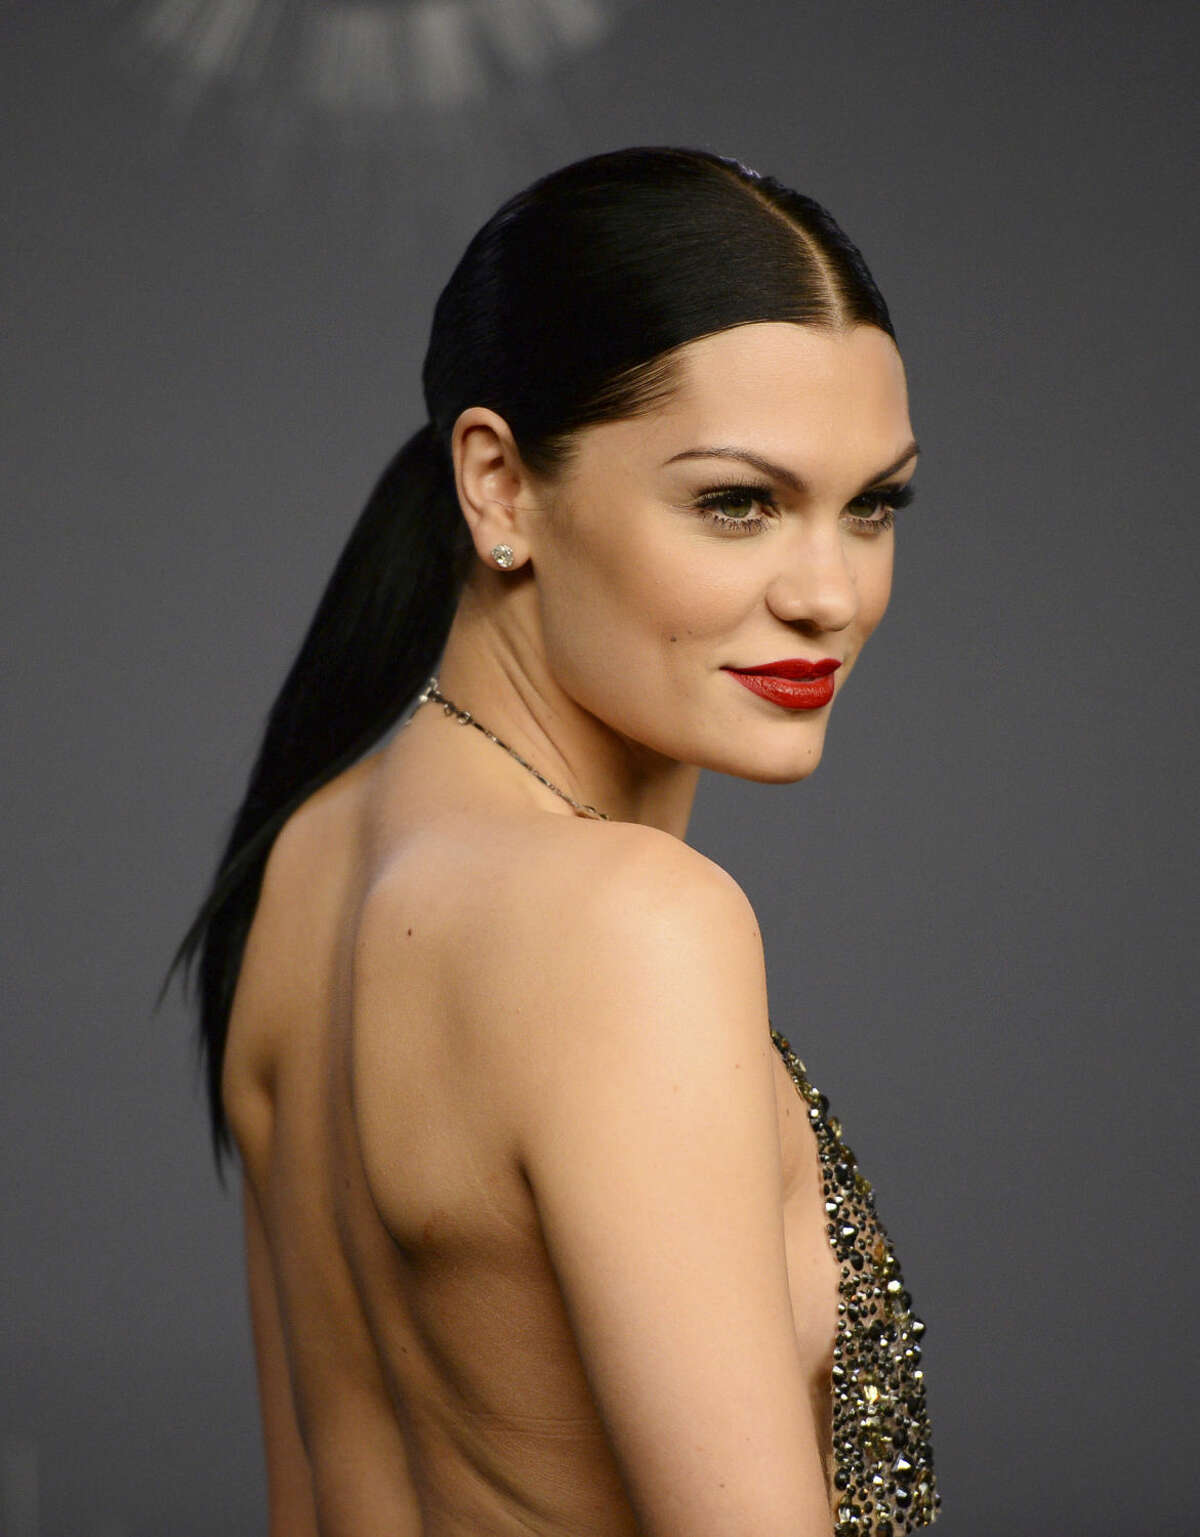 Jessie J poses in the press room at the MTV Video Music Awards at The Forum on Sunday, Aug. 24, 2014, in Inglewood, Calif. (Photo by Jordan Strauss/Invision/AP)